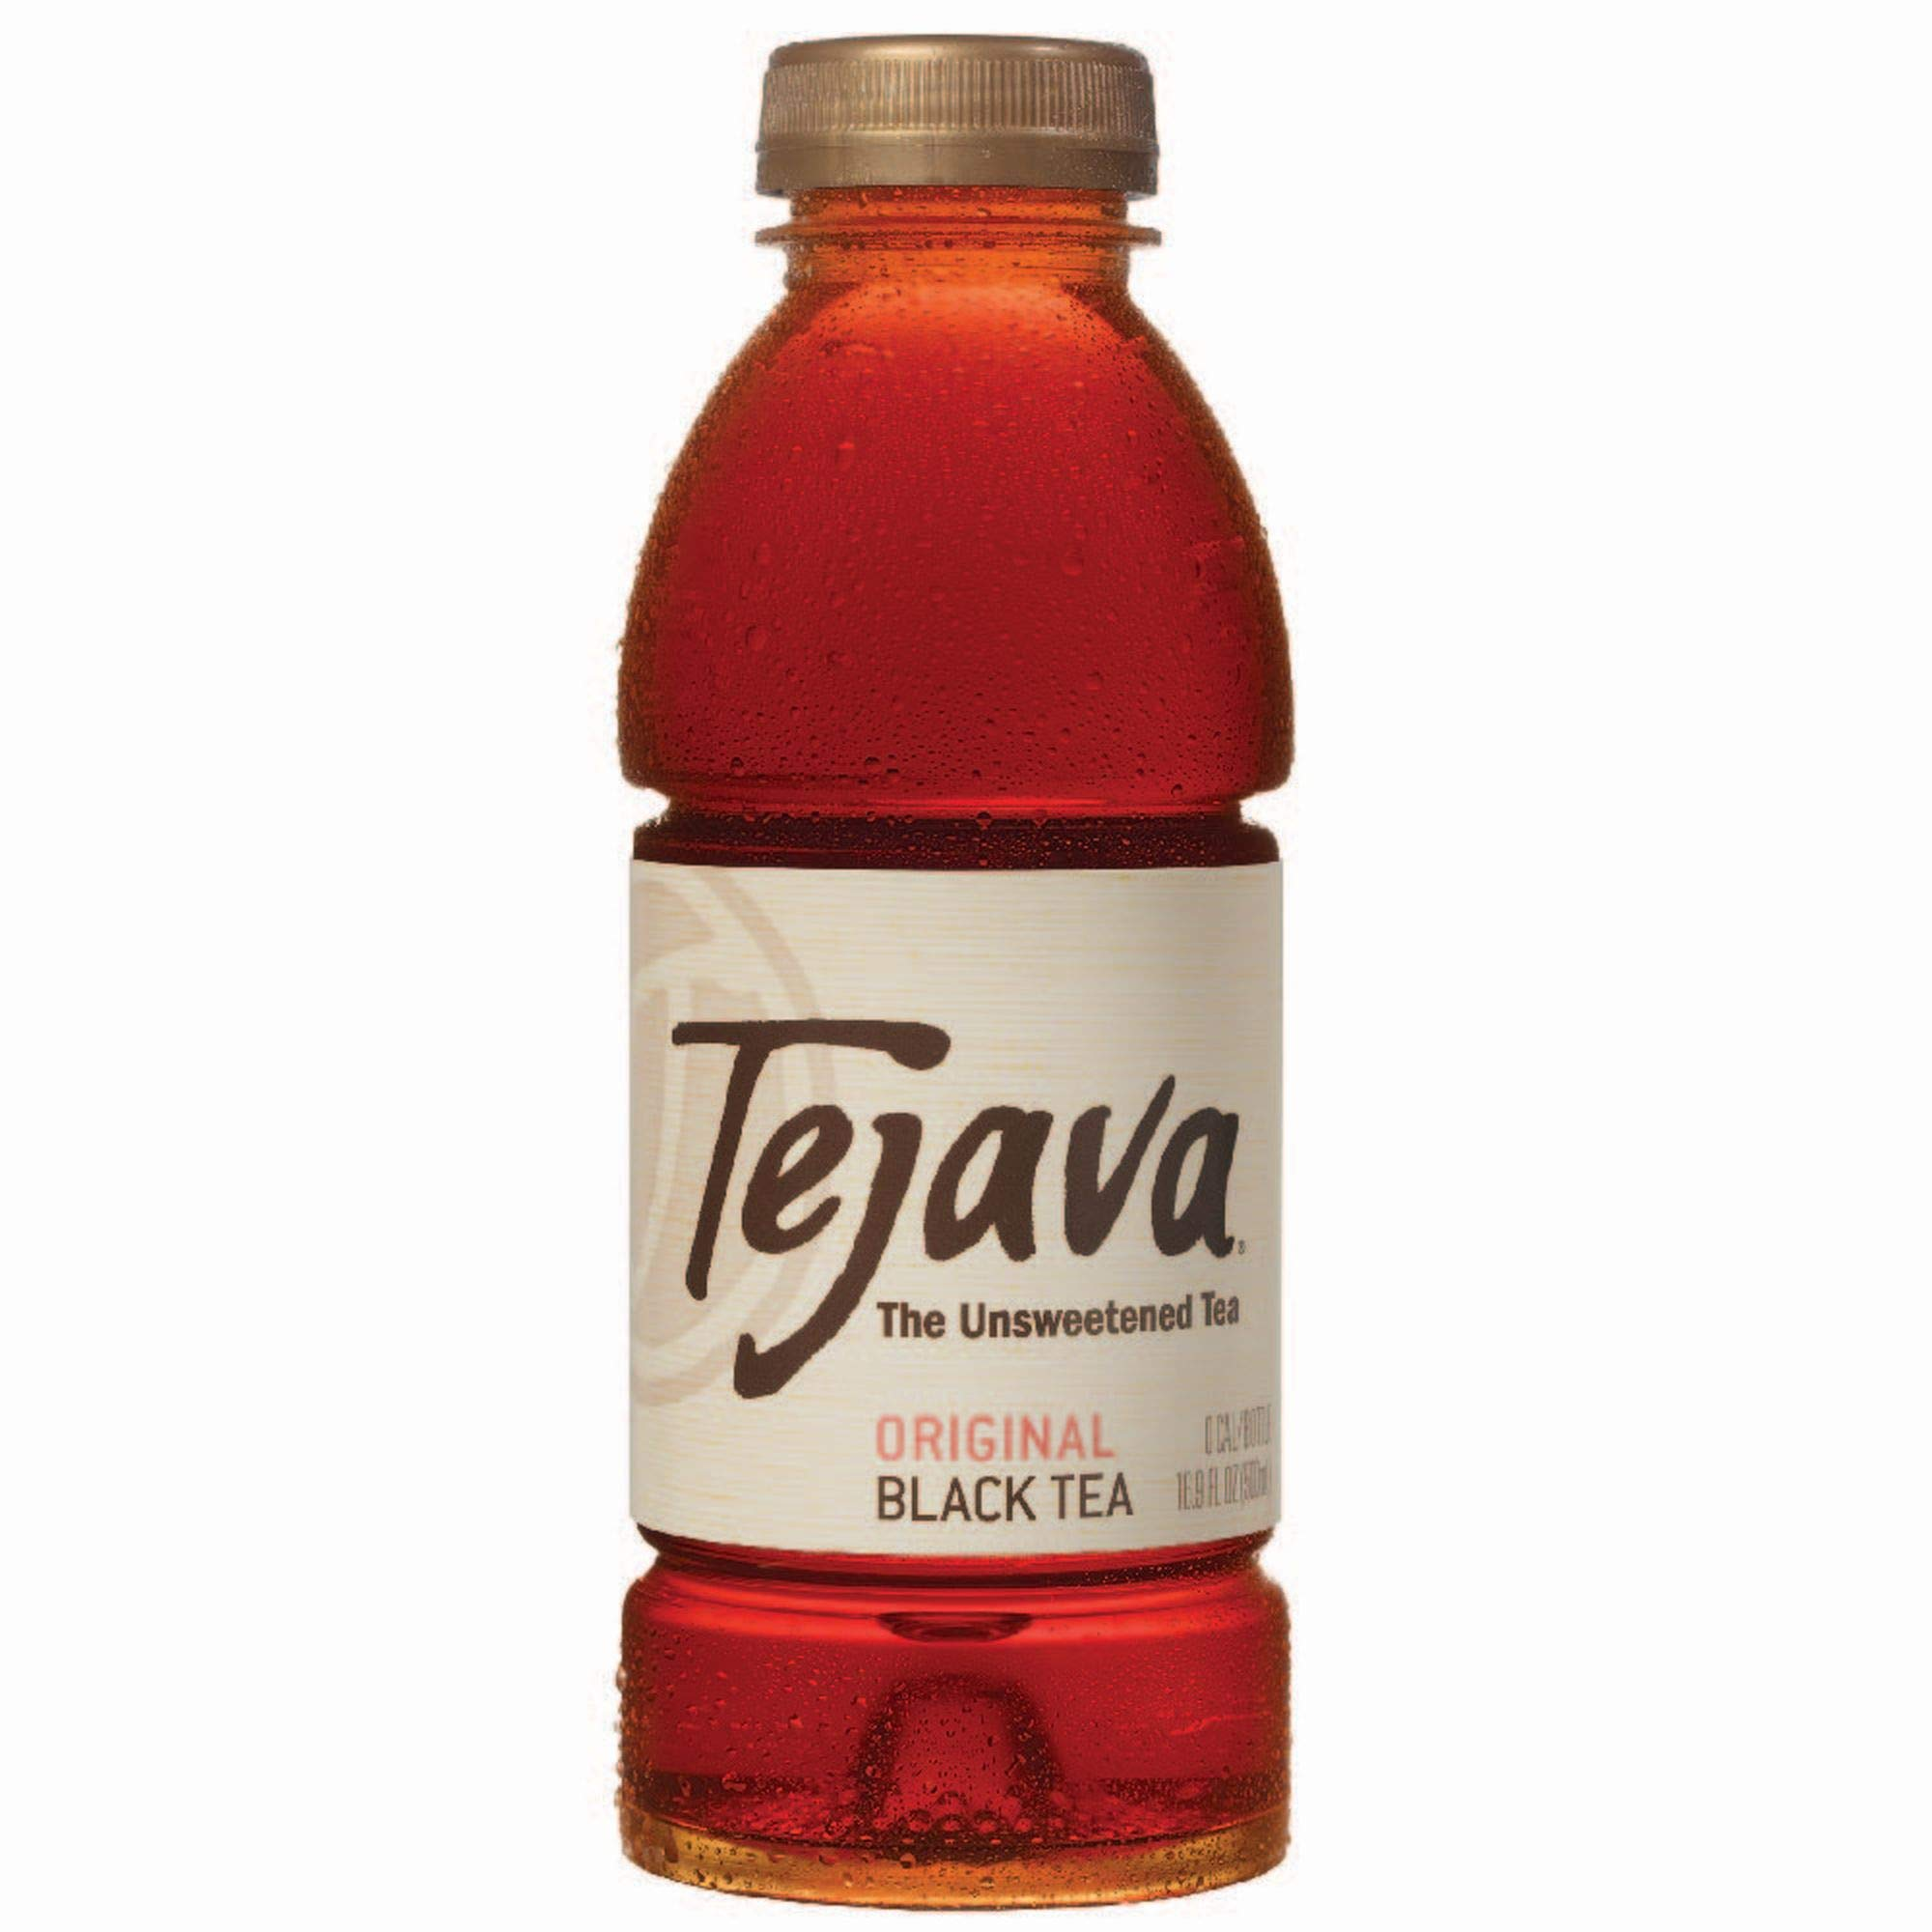 Tejava Original Unsweetened Black Iced Tea, 16.9 oz PET Bottles, Award Winning, Non-GMO-Verified, from Rainforest Alliance-Certified farms (12 Pack) by Tejava (Image #6)